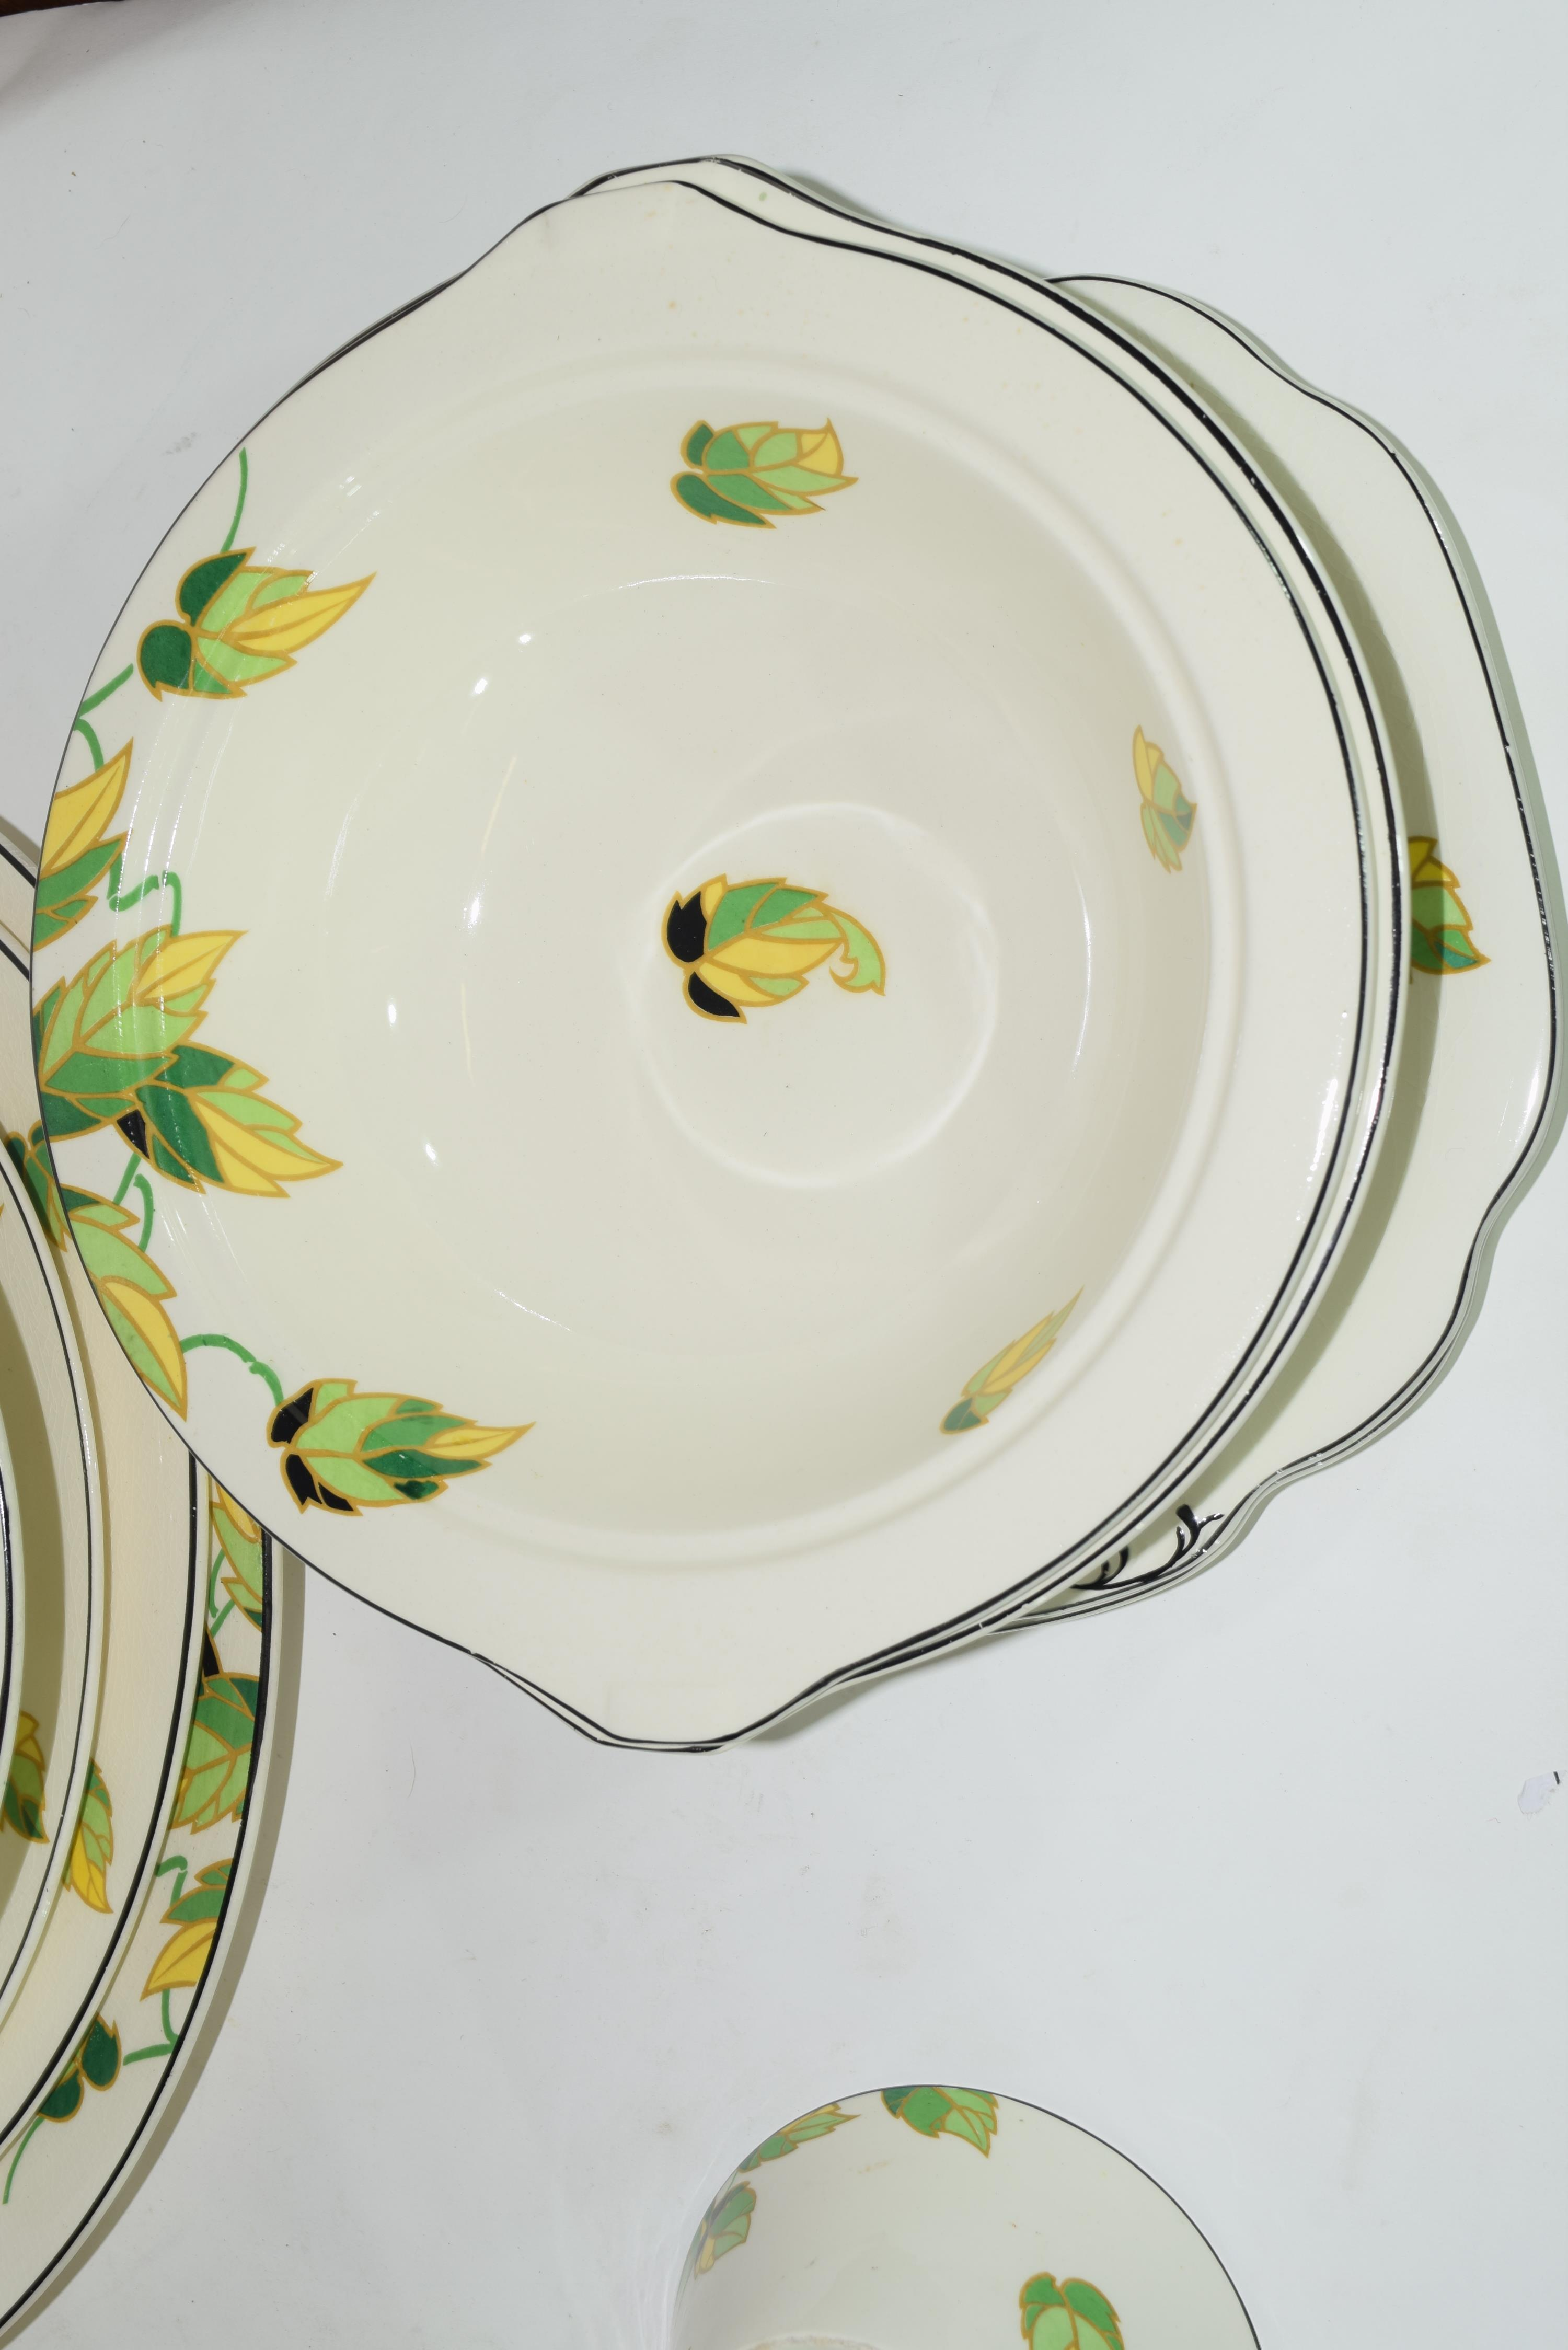 Quantity of Wedgwood dinner wares in Art Deco style - Image 6 of 7